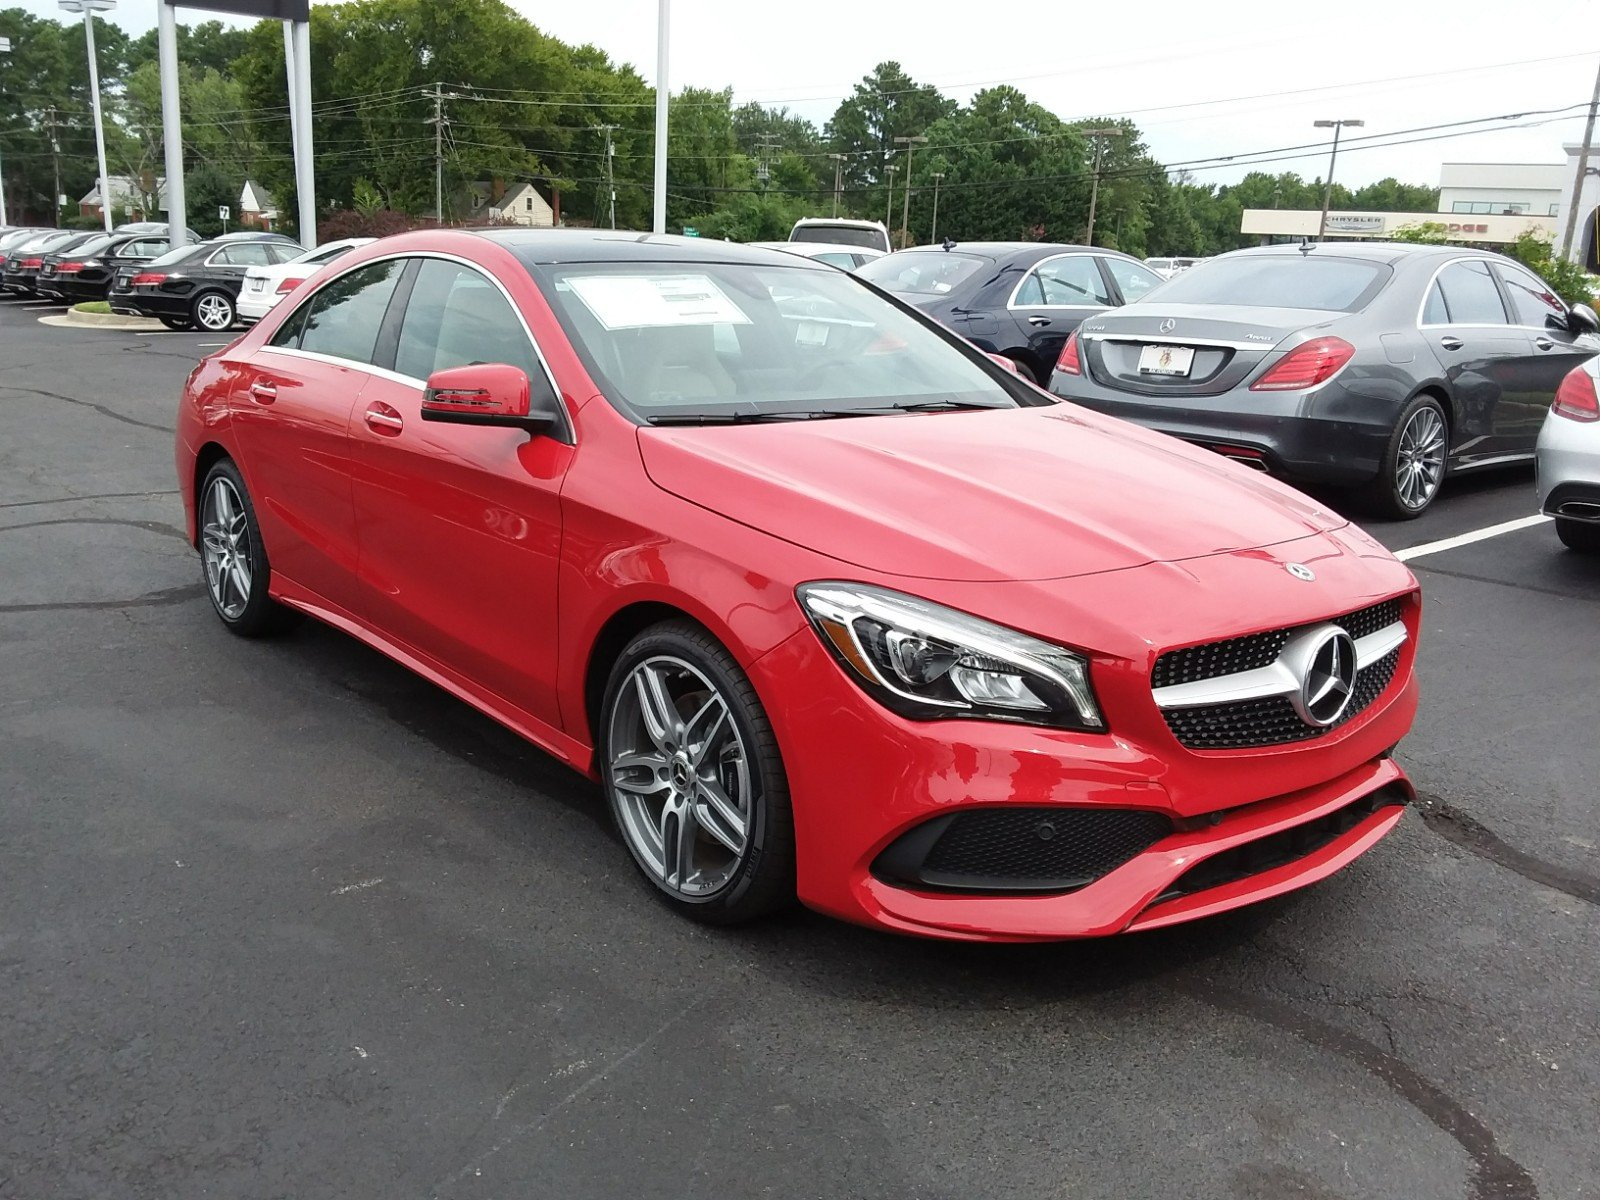 mercedes benz 2019 cla 250 New 2019 Mercedes Benz CLA CLA 250 Coupe in Richmond #93010  mercedes benz 2019 cla 250